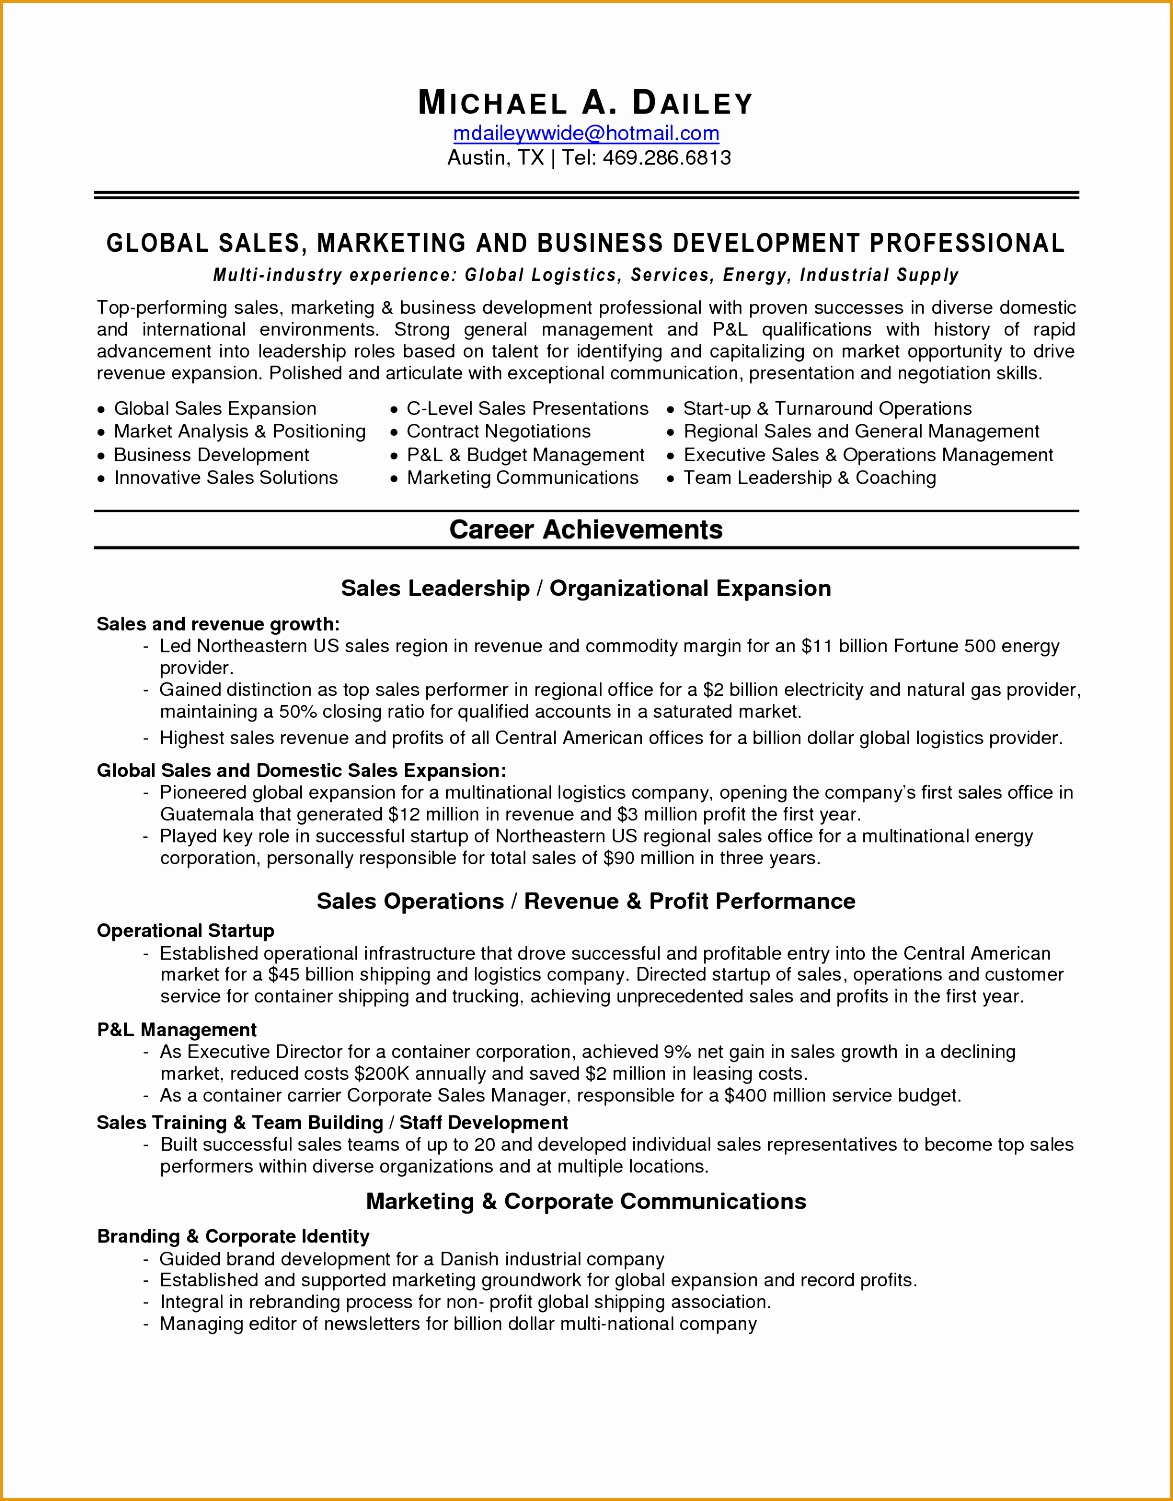 Customer Service Sales Representative Resume 6 Sales Marketing Resume Sample Free Samples Examples